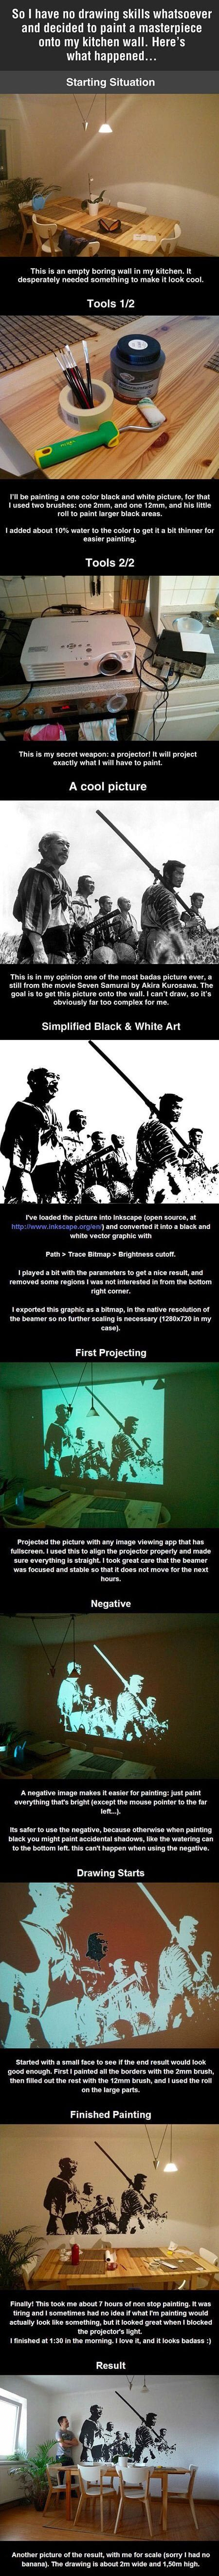 How to paint a masterpiece. - 9GAG #Drawingtips